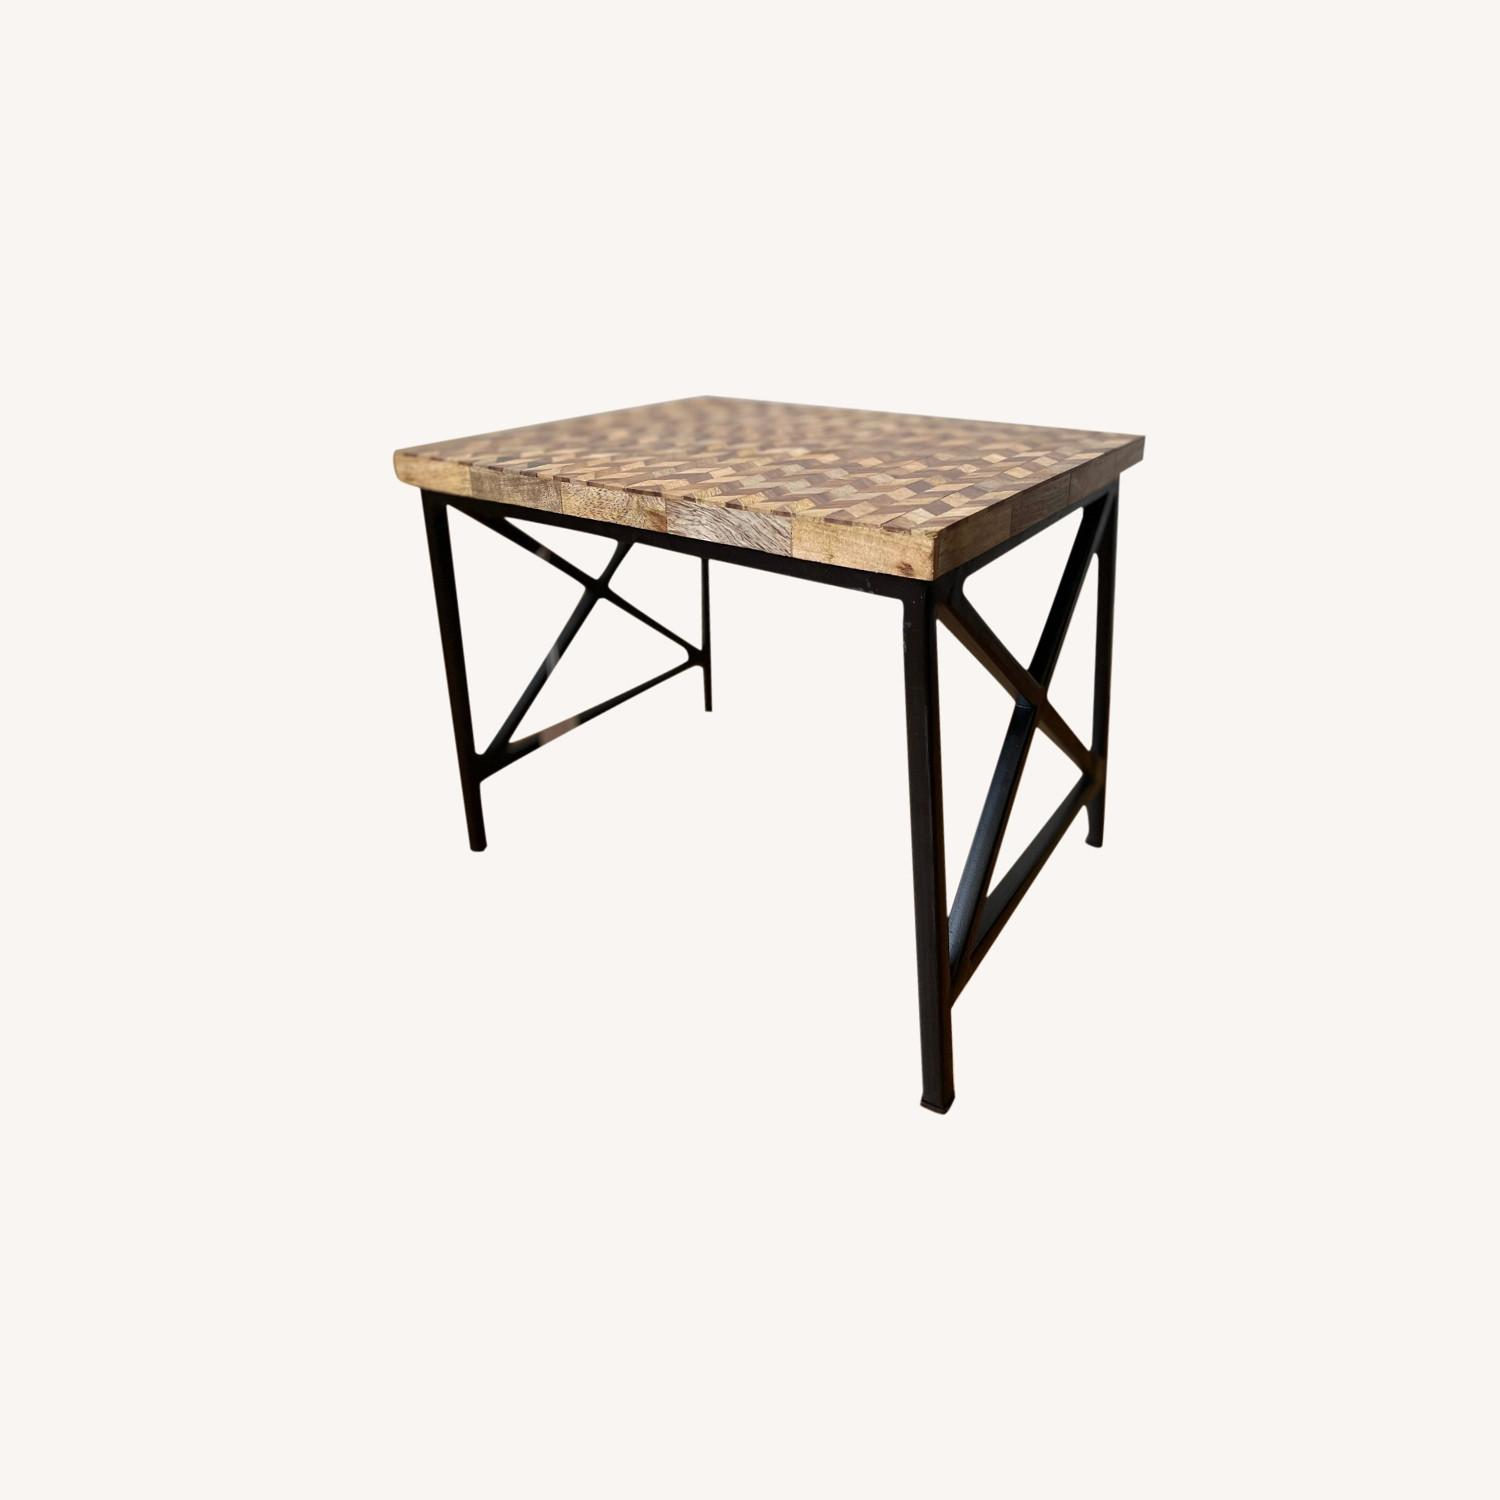 Pair of Industrial Wooden End Tables - image-0